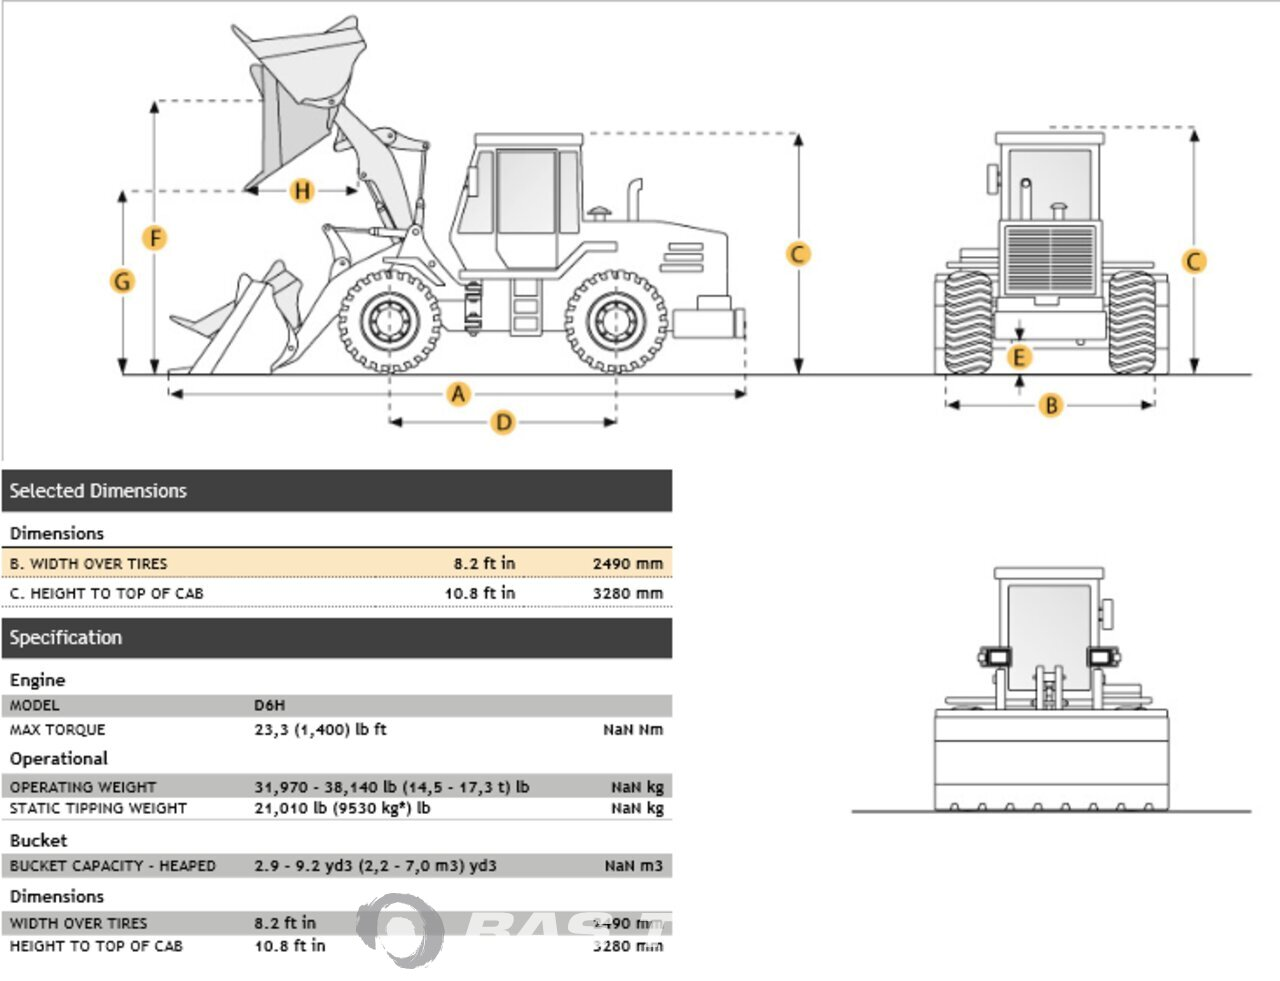 hight resolution of volvo l90f wiring diagram wiring diagram for you volvo l90 wiring diagram volvo l90f wiring diagram